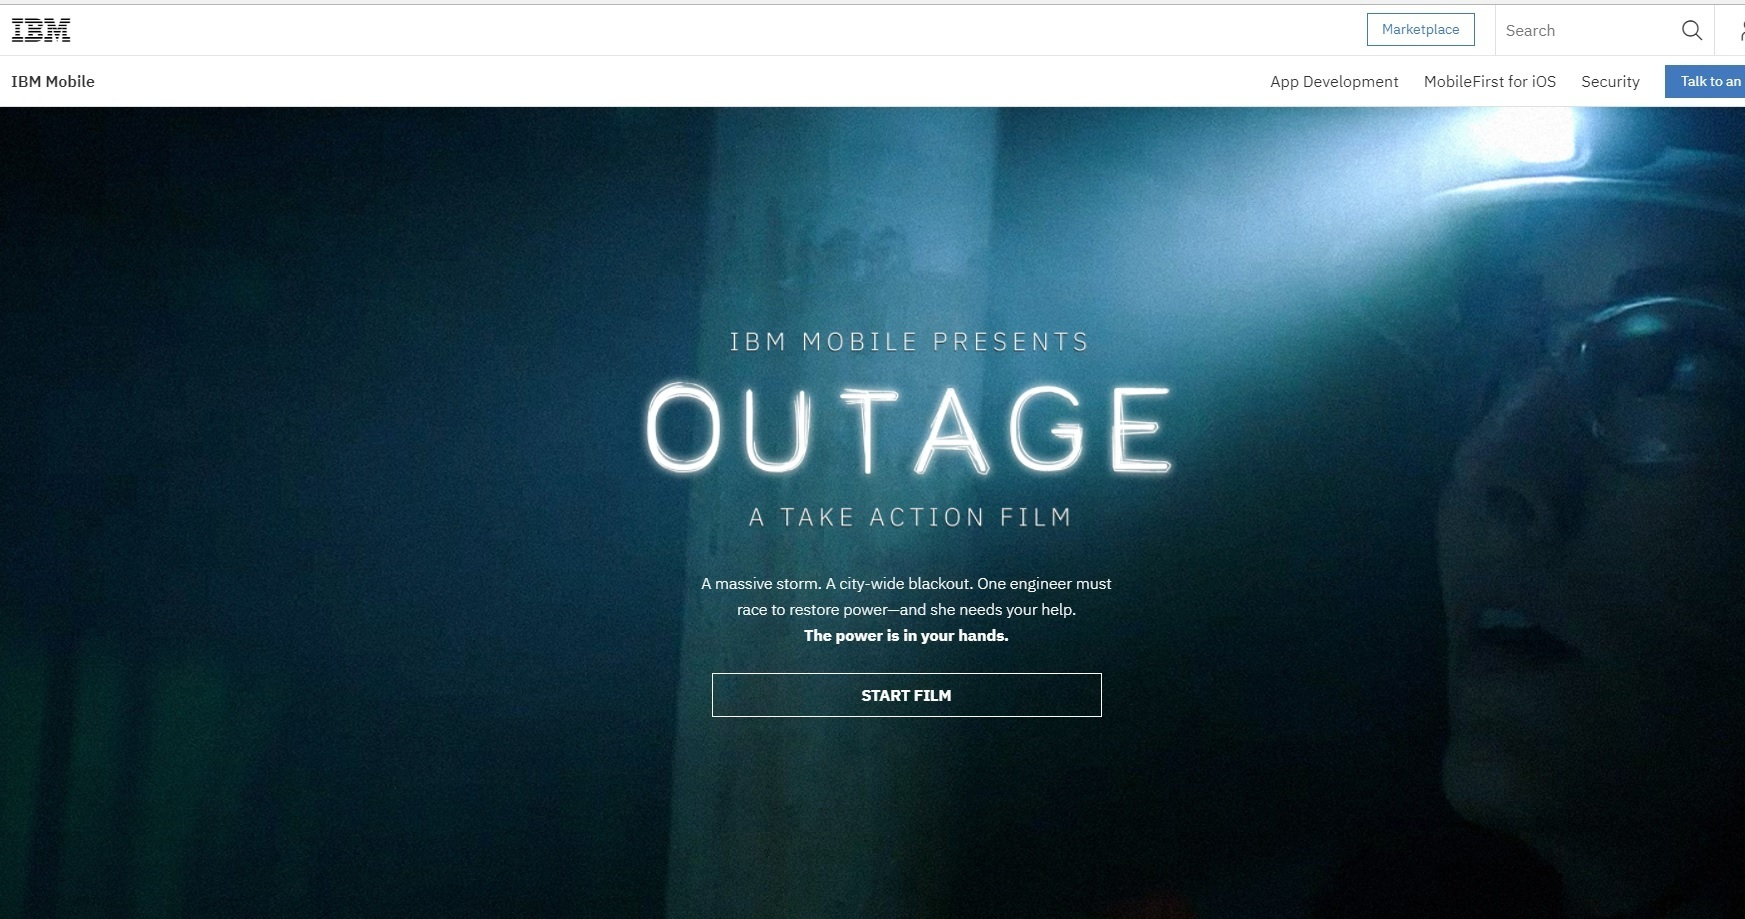 Outage: A Take Action Film by IBM